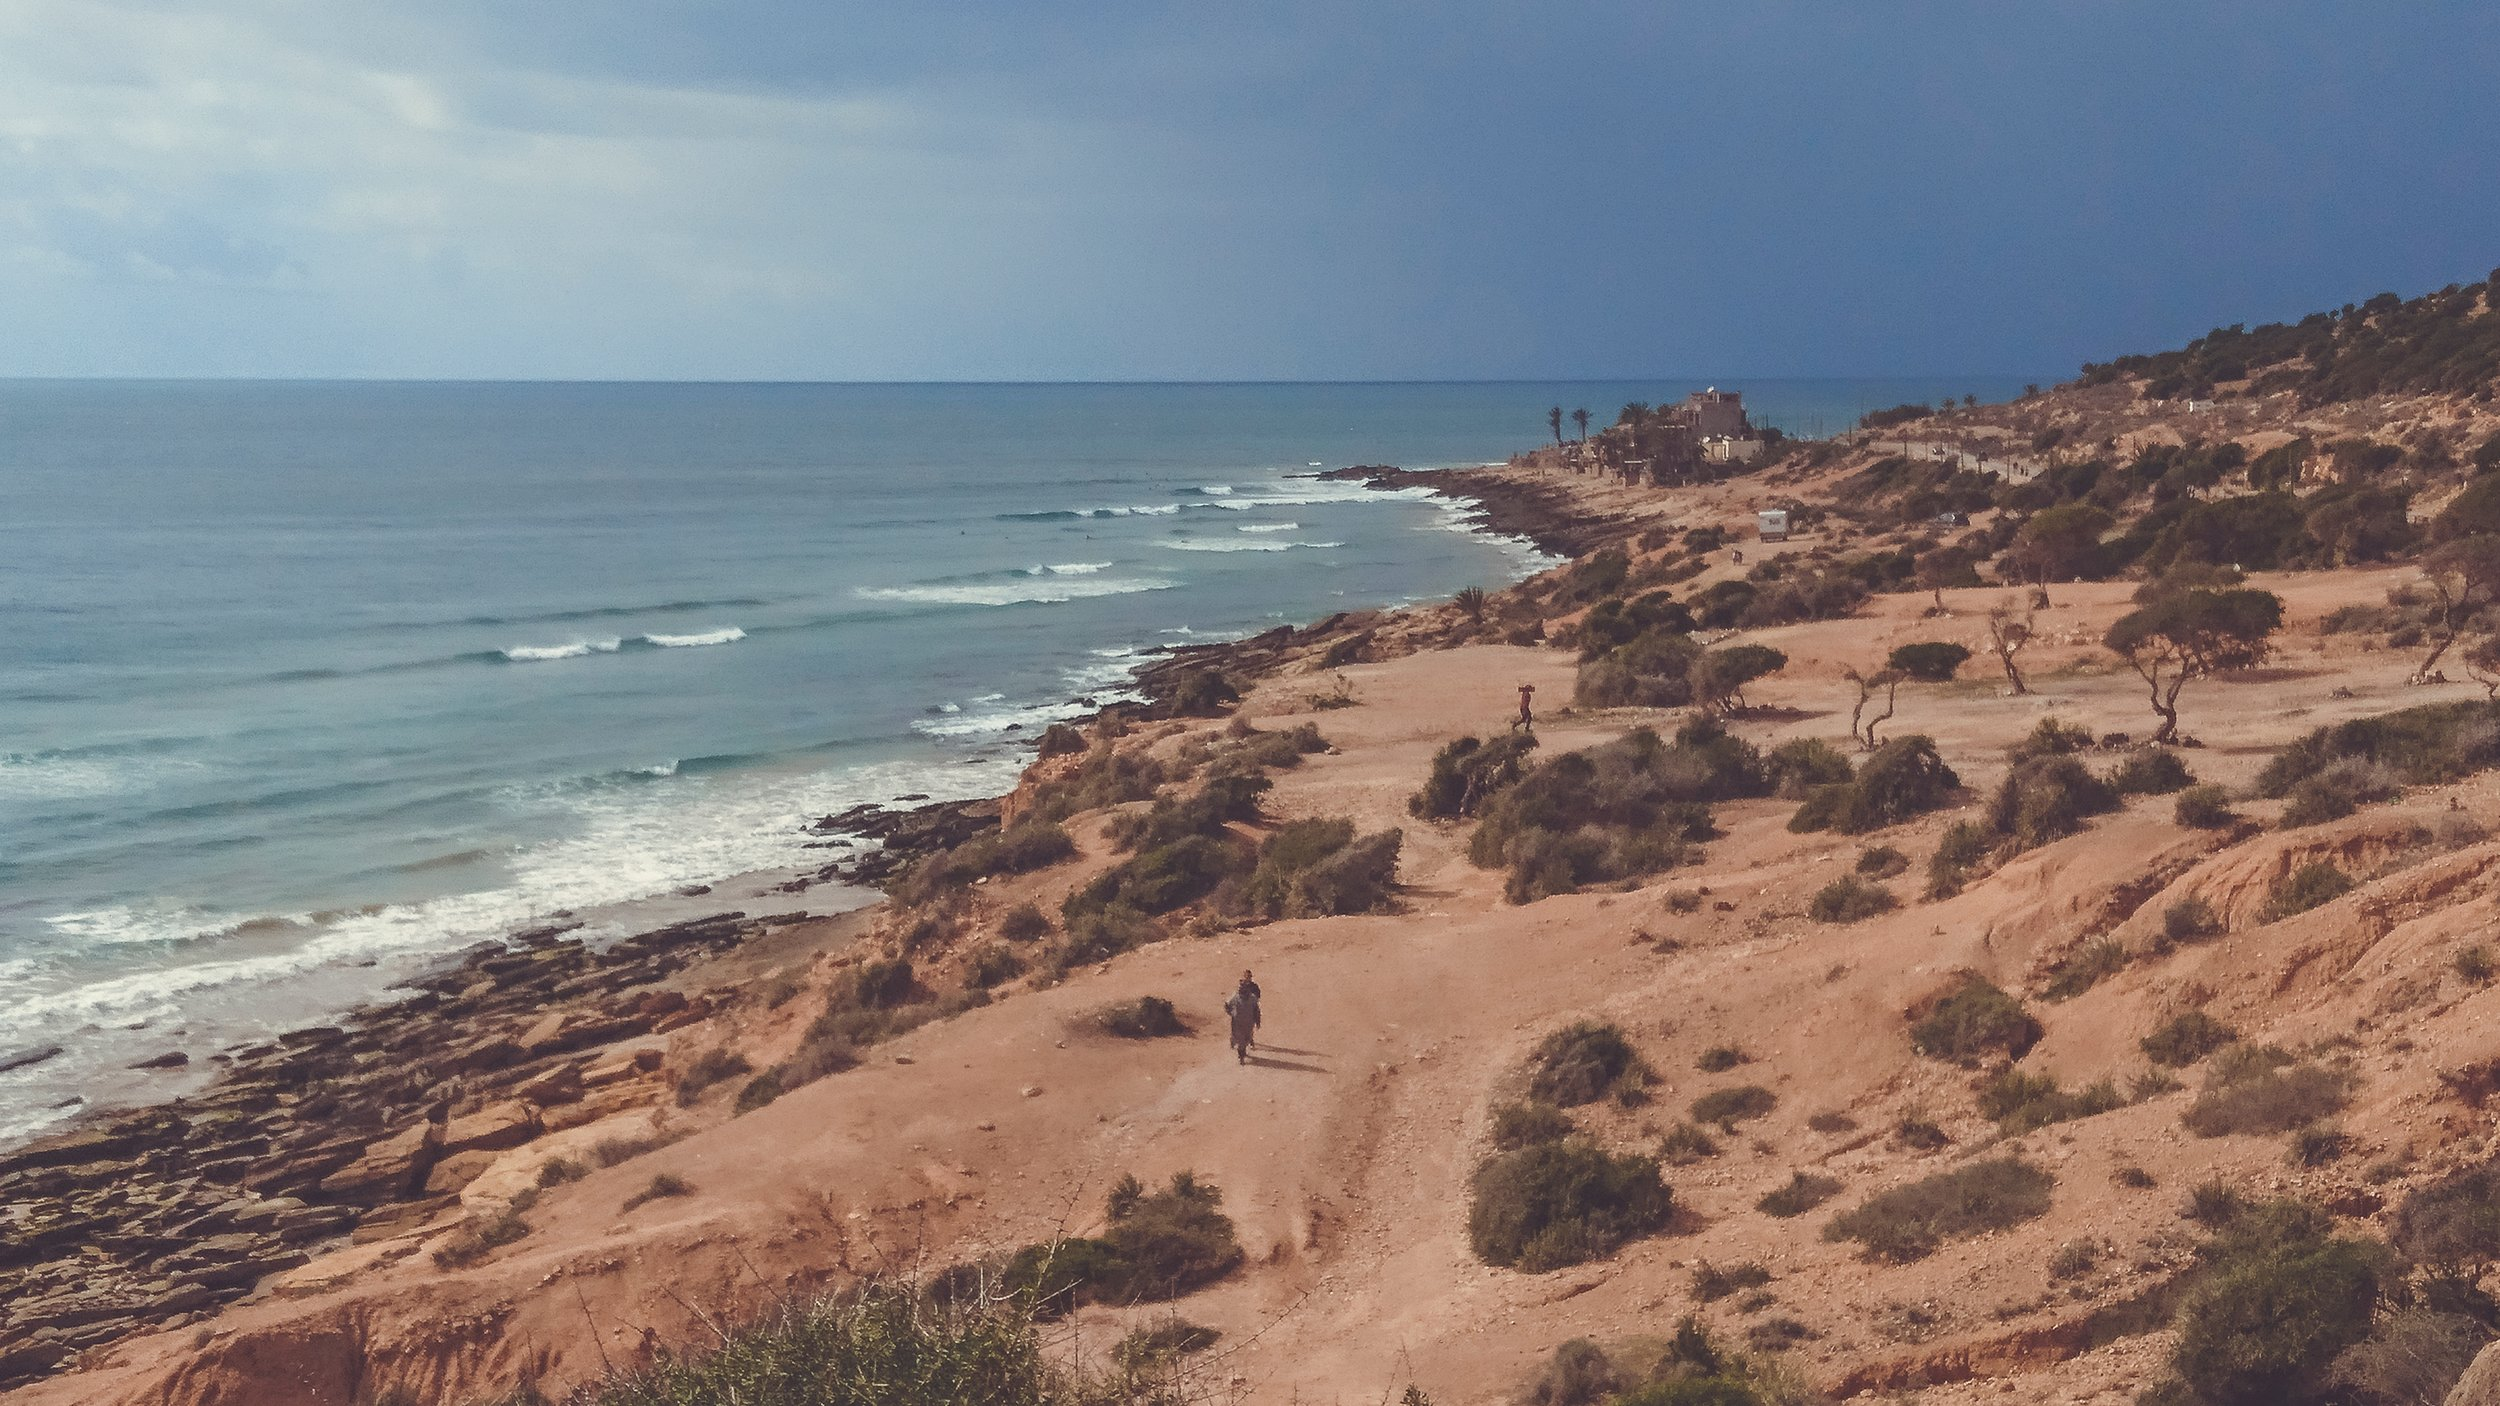 anchor-point-taghazout-morocco.jpg